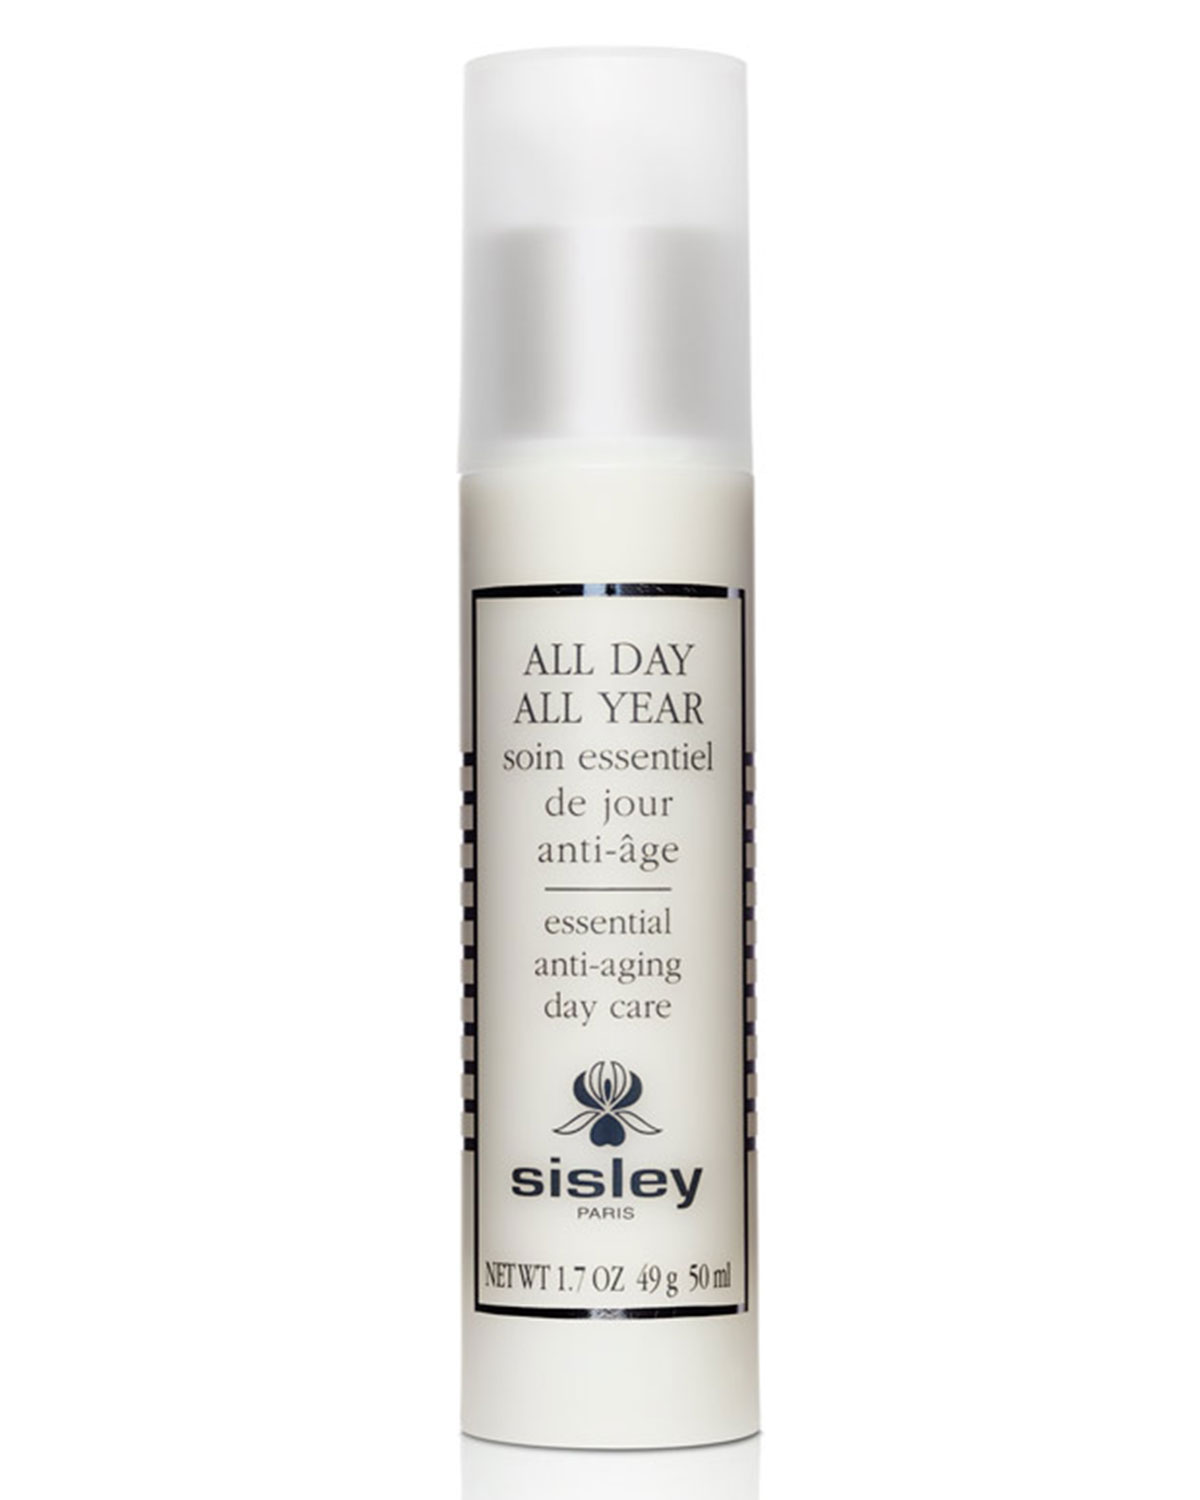 Sisley-Paris 1.7 oz. All Day All Year Cream